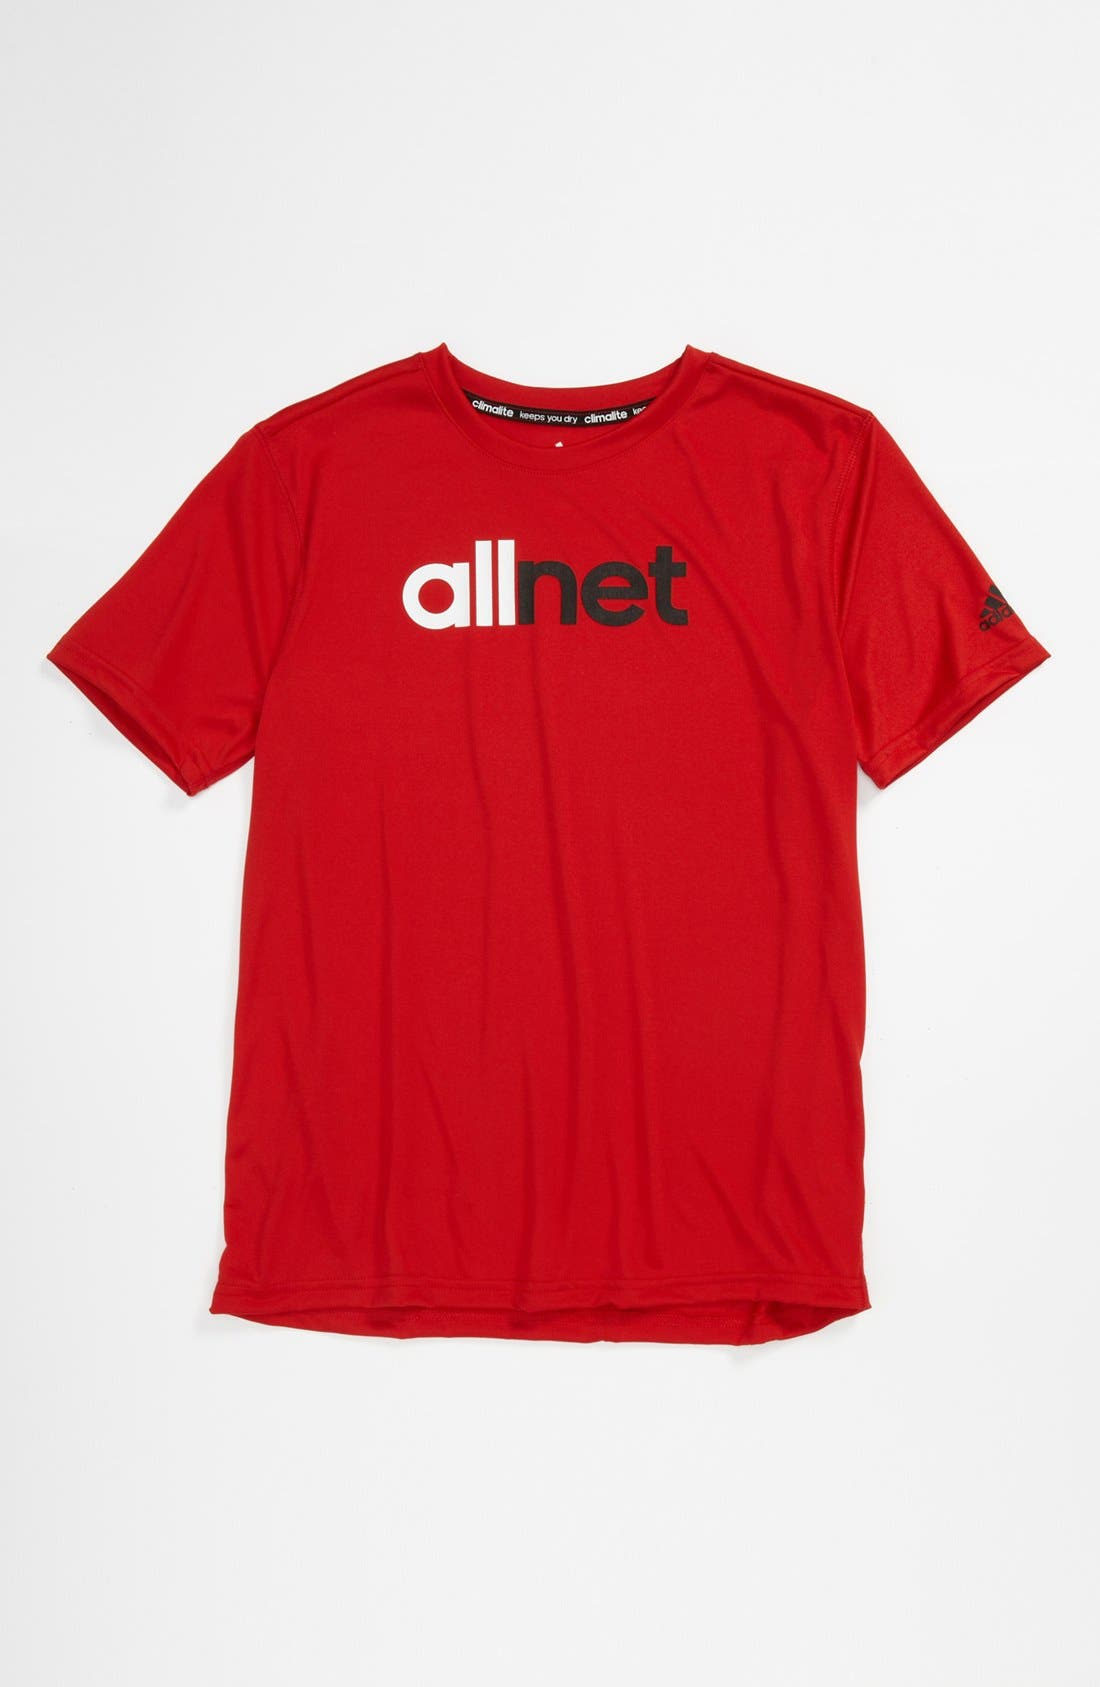 Main Image - adidas 'All Net' T-shirt (Big Boys)